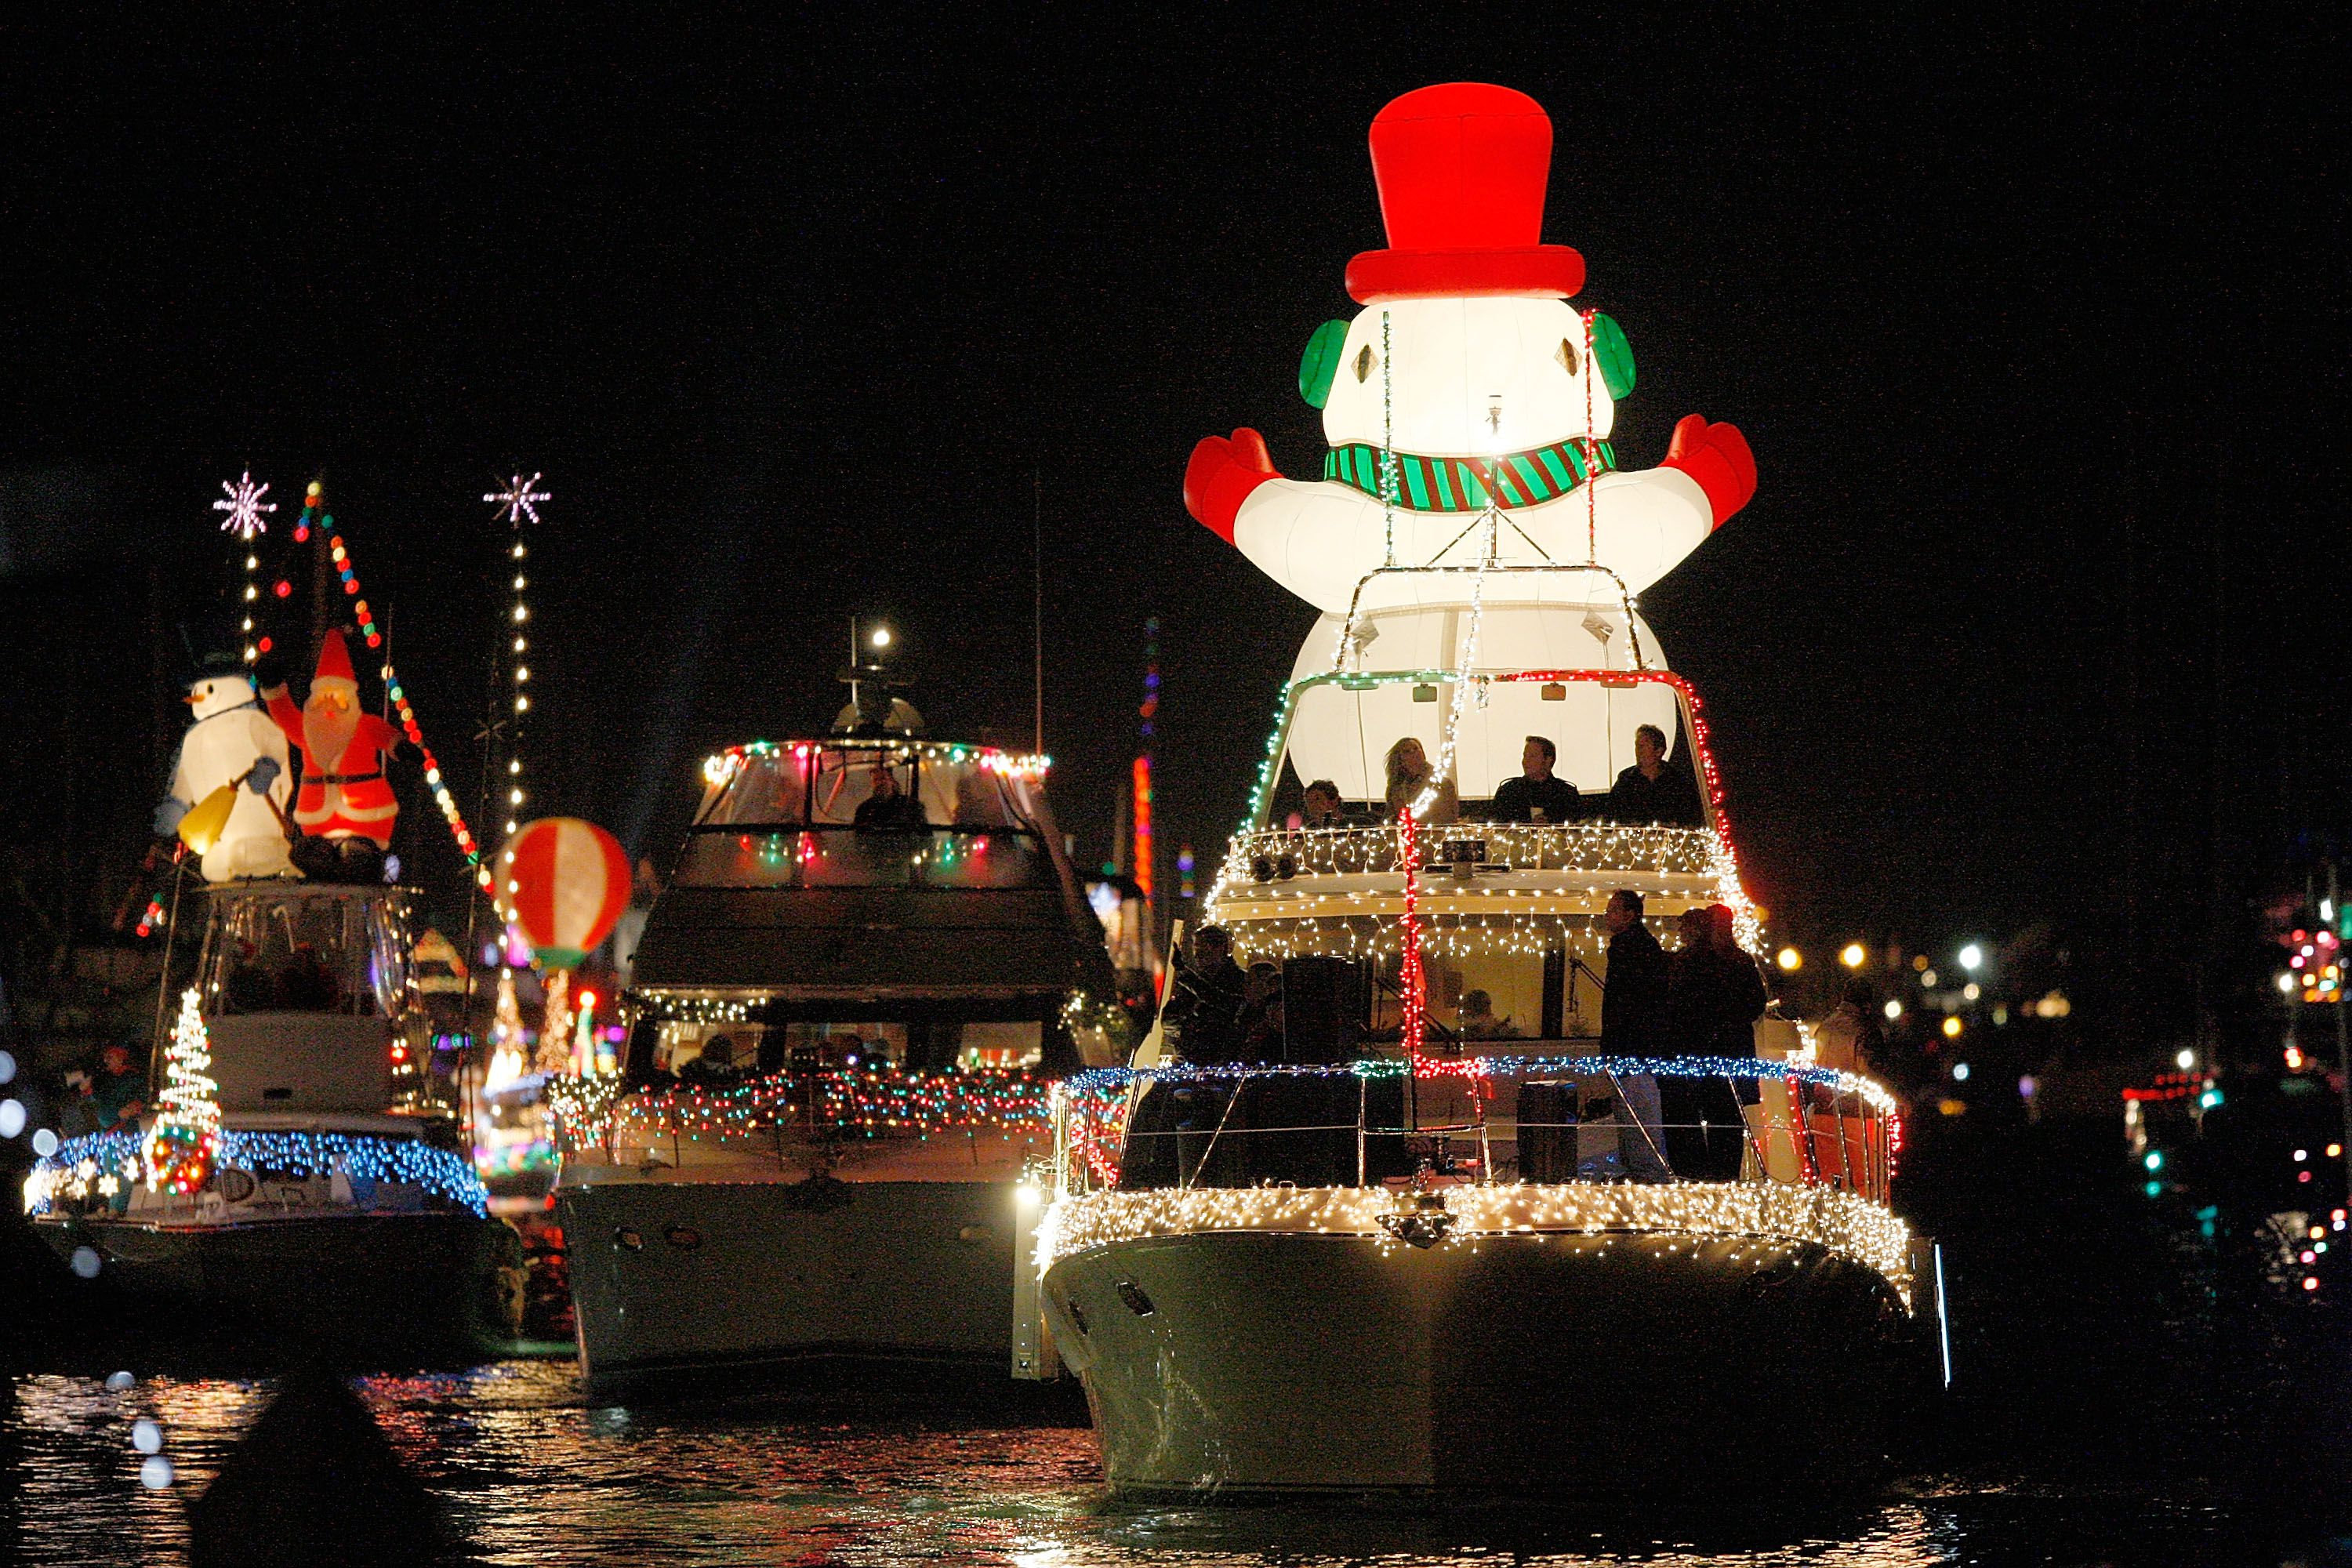 Christmas Boat Parade.Newport Beach Christmas Boat Parade The Complete Guide